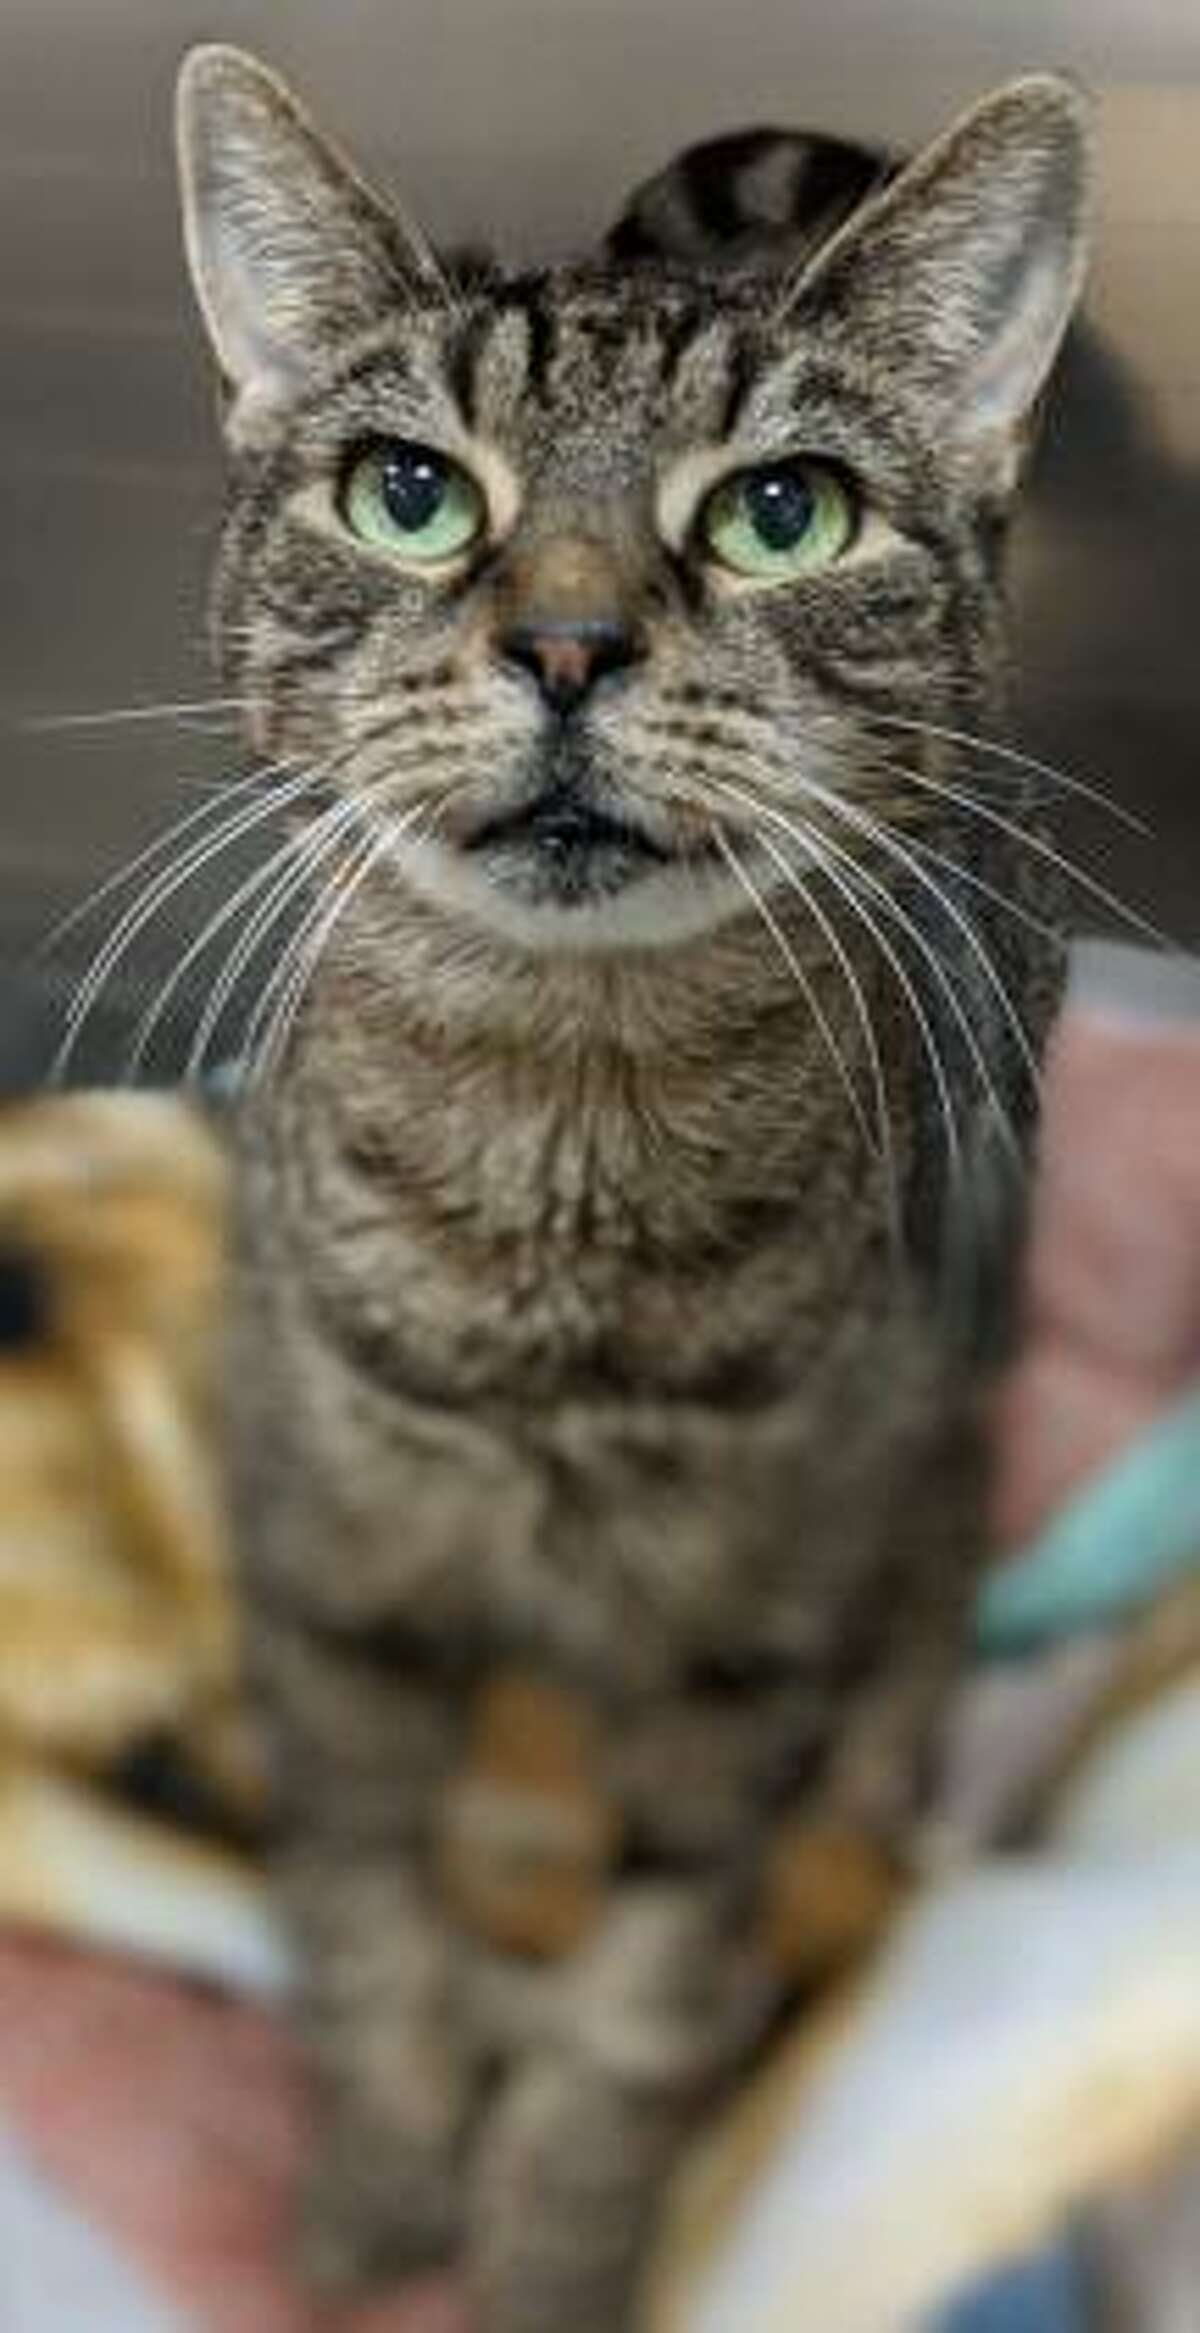 This is Felicia, a 10-year-old female kitty looking for her new forever home. Felicia has not had much experience with children but since she is a fairly easy going cat, she is willing to consider sharing her home with kids who can be gentle and respectful of pets. Felicia would tolerate living with a dog but she has not had much experience with other cats. Her interactions at CHS show that she may be willing to live with another cat. Like a lot of felines, this one is quiet and reserved and likely would prefer a peaceful home. Felicia does have some special needs but still has lots of life to live and love to give. Please ask the adoption counselor to explain when contacted about a visit with Felicia in Newington. Remember, the Connecticut Humane Society has no time limits for adoption. To learn more about operations during COVID-19, go to https://cthumane.org/adopt/adoption-process/. Applications for adoption can be obtained at https://cthumane.org/adopt/all-adoptable-pets/.